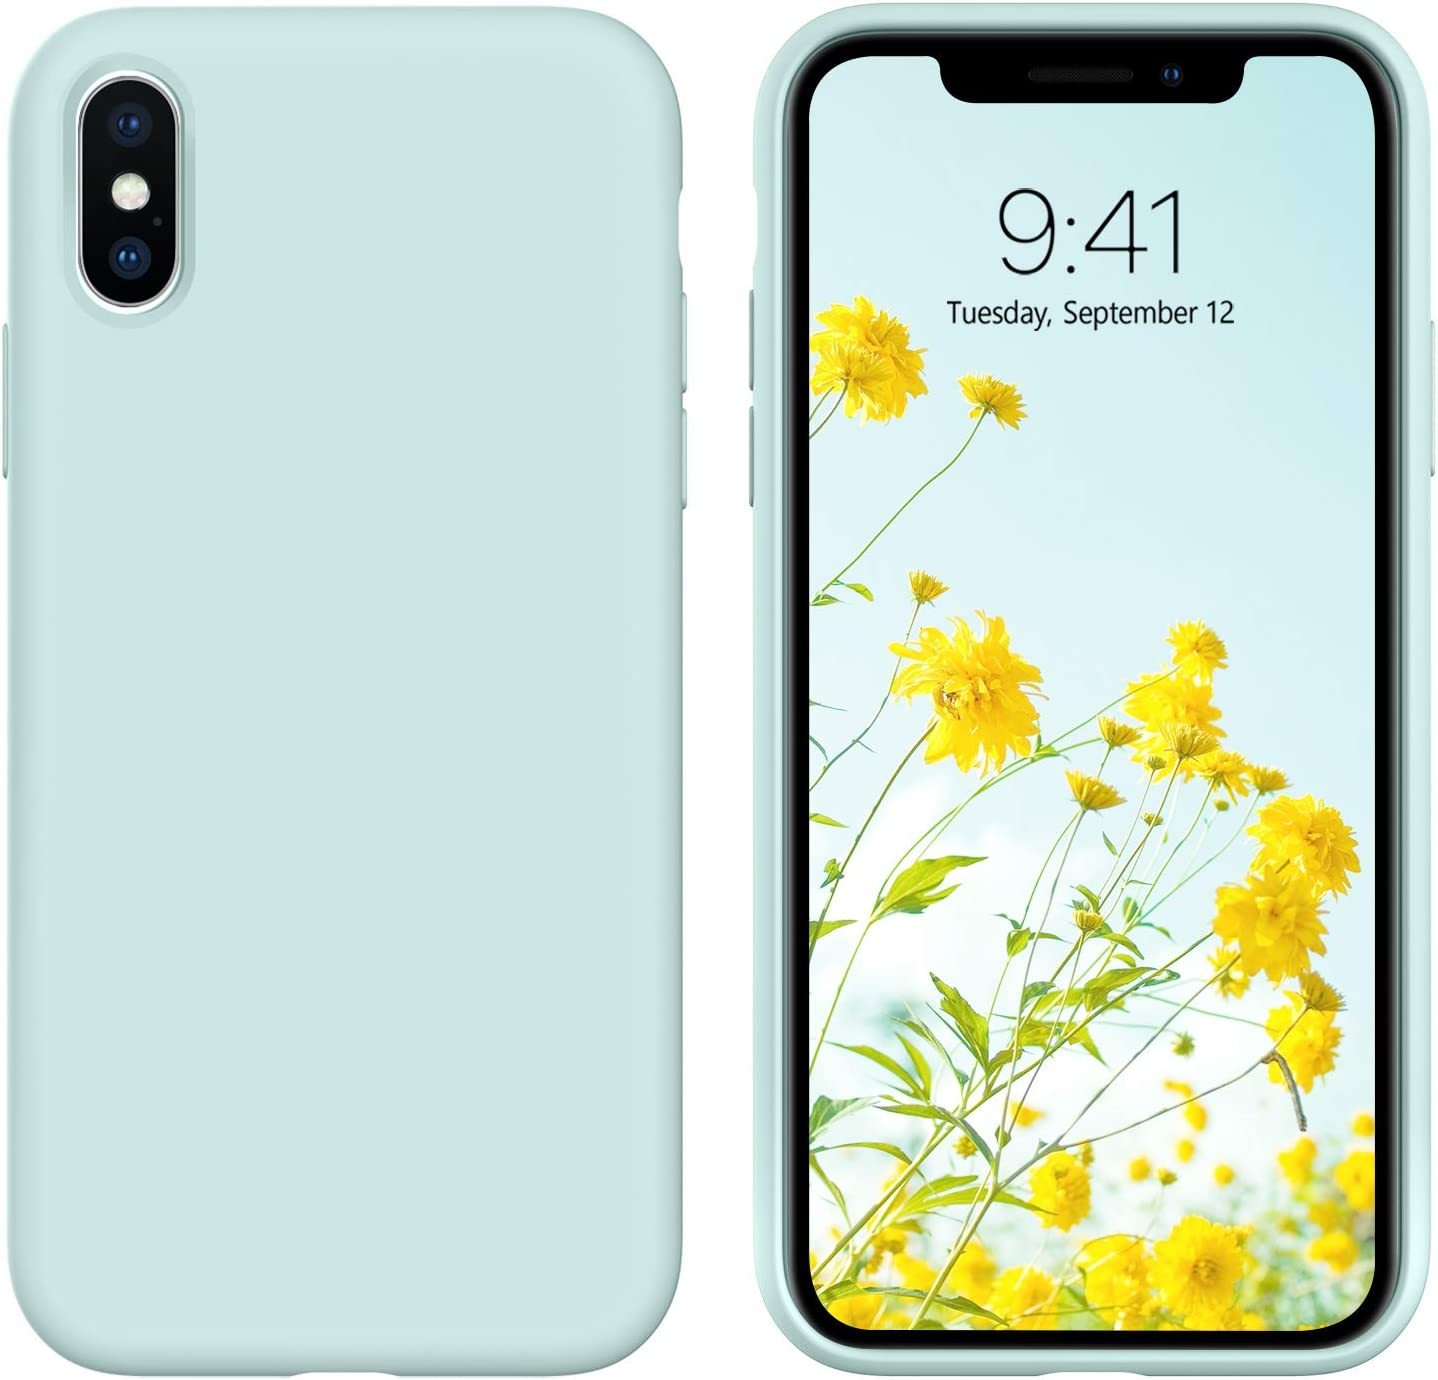 DUEDUE iPhone Xs Max Case, Liquid Silicone Soft Gel Rubber Slim Cover with Microfiber Cloth Lining Cushion Shockproof Anti-Scratch Full Protective Cover for iPhone Xs Max, Mint Green